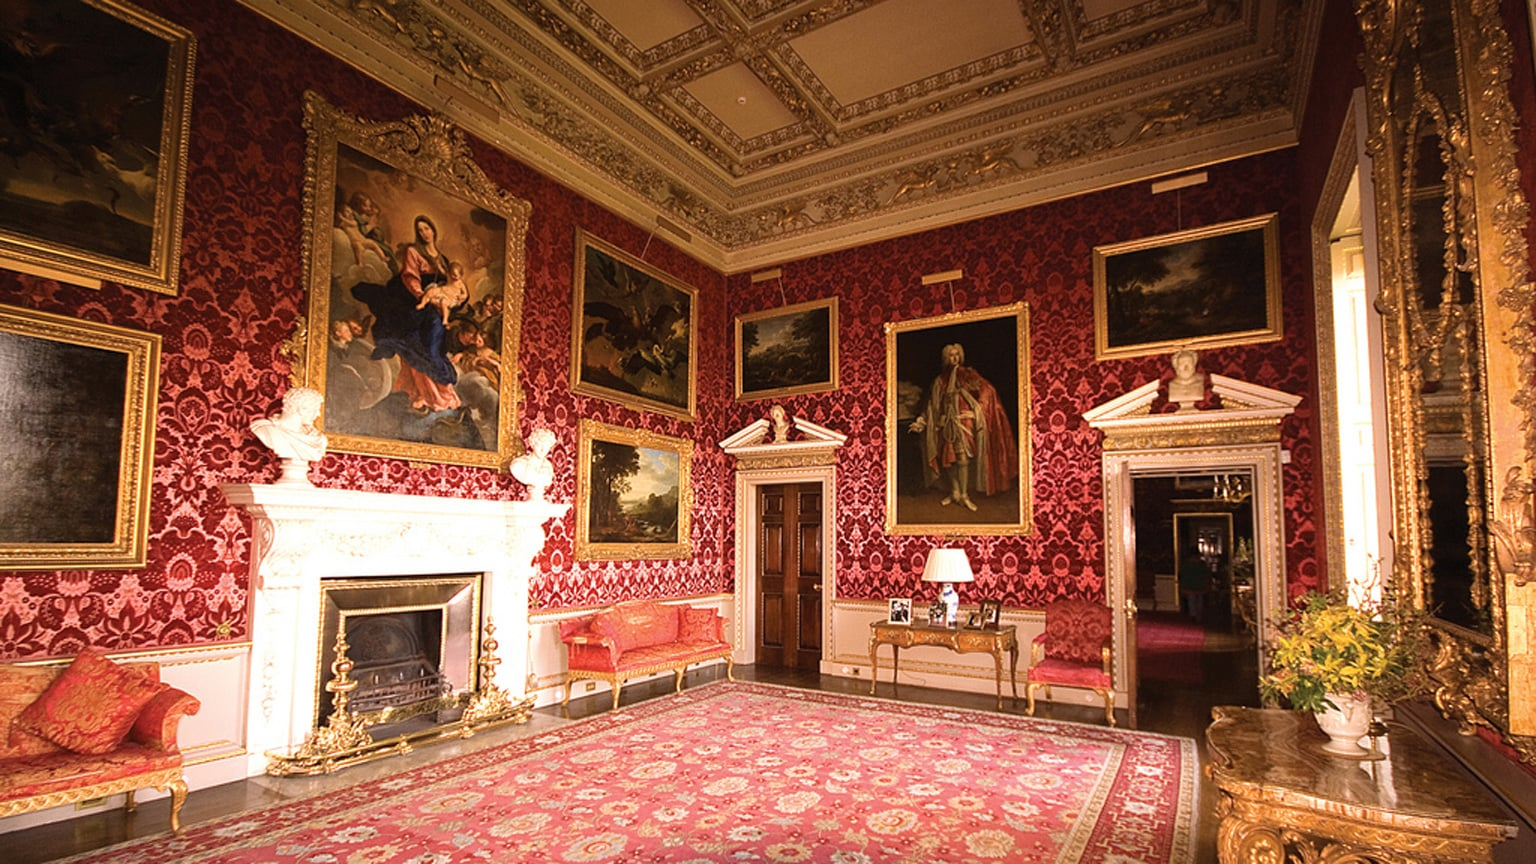 As well as Viscount Coke and his family, two other families live here throughout the year